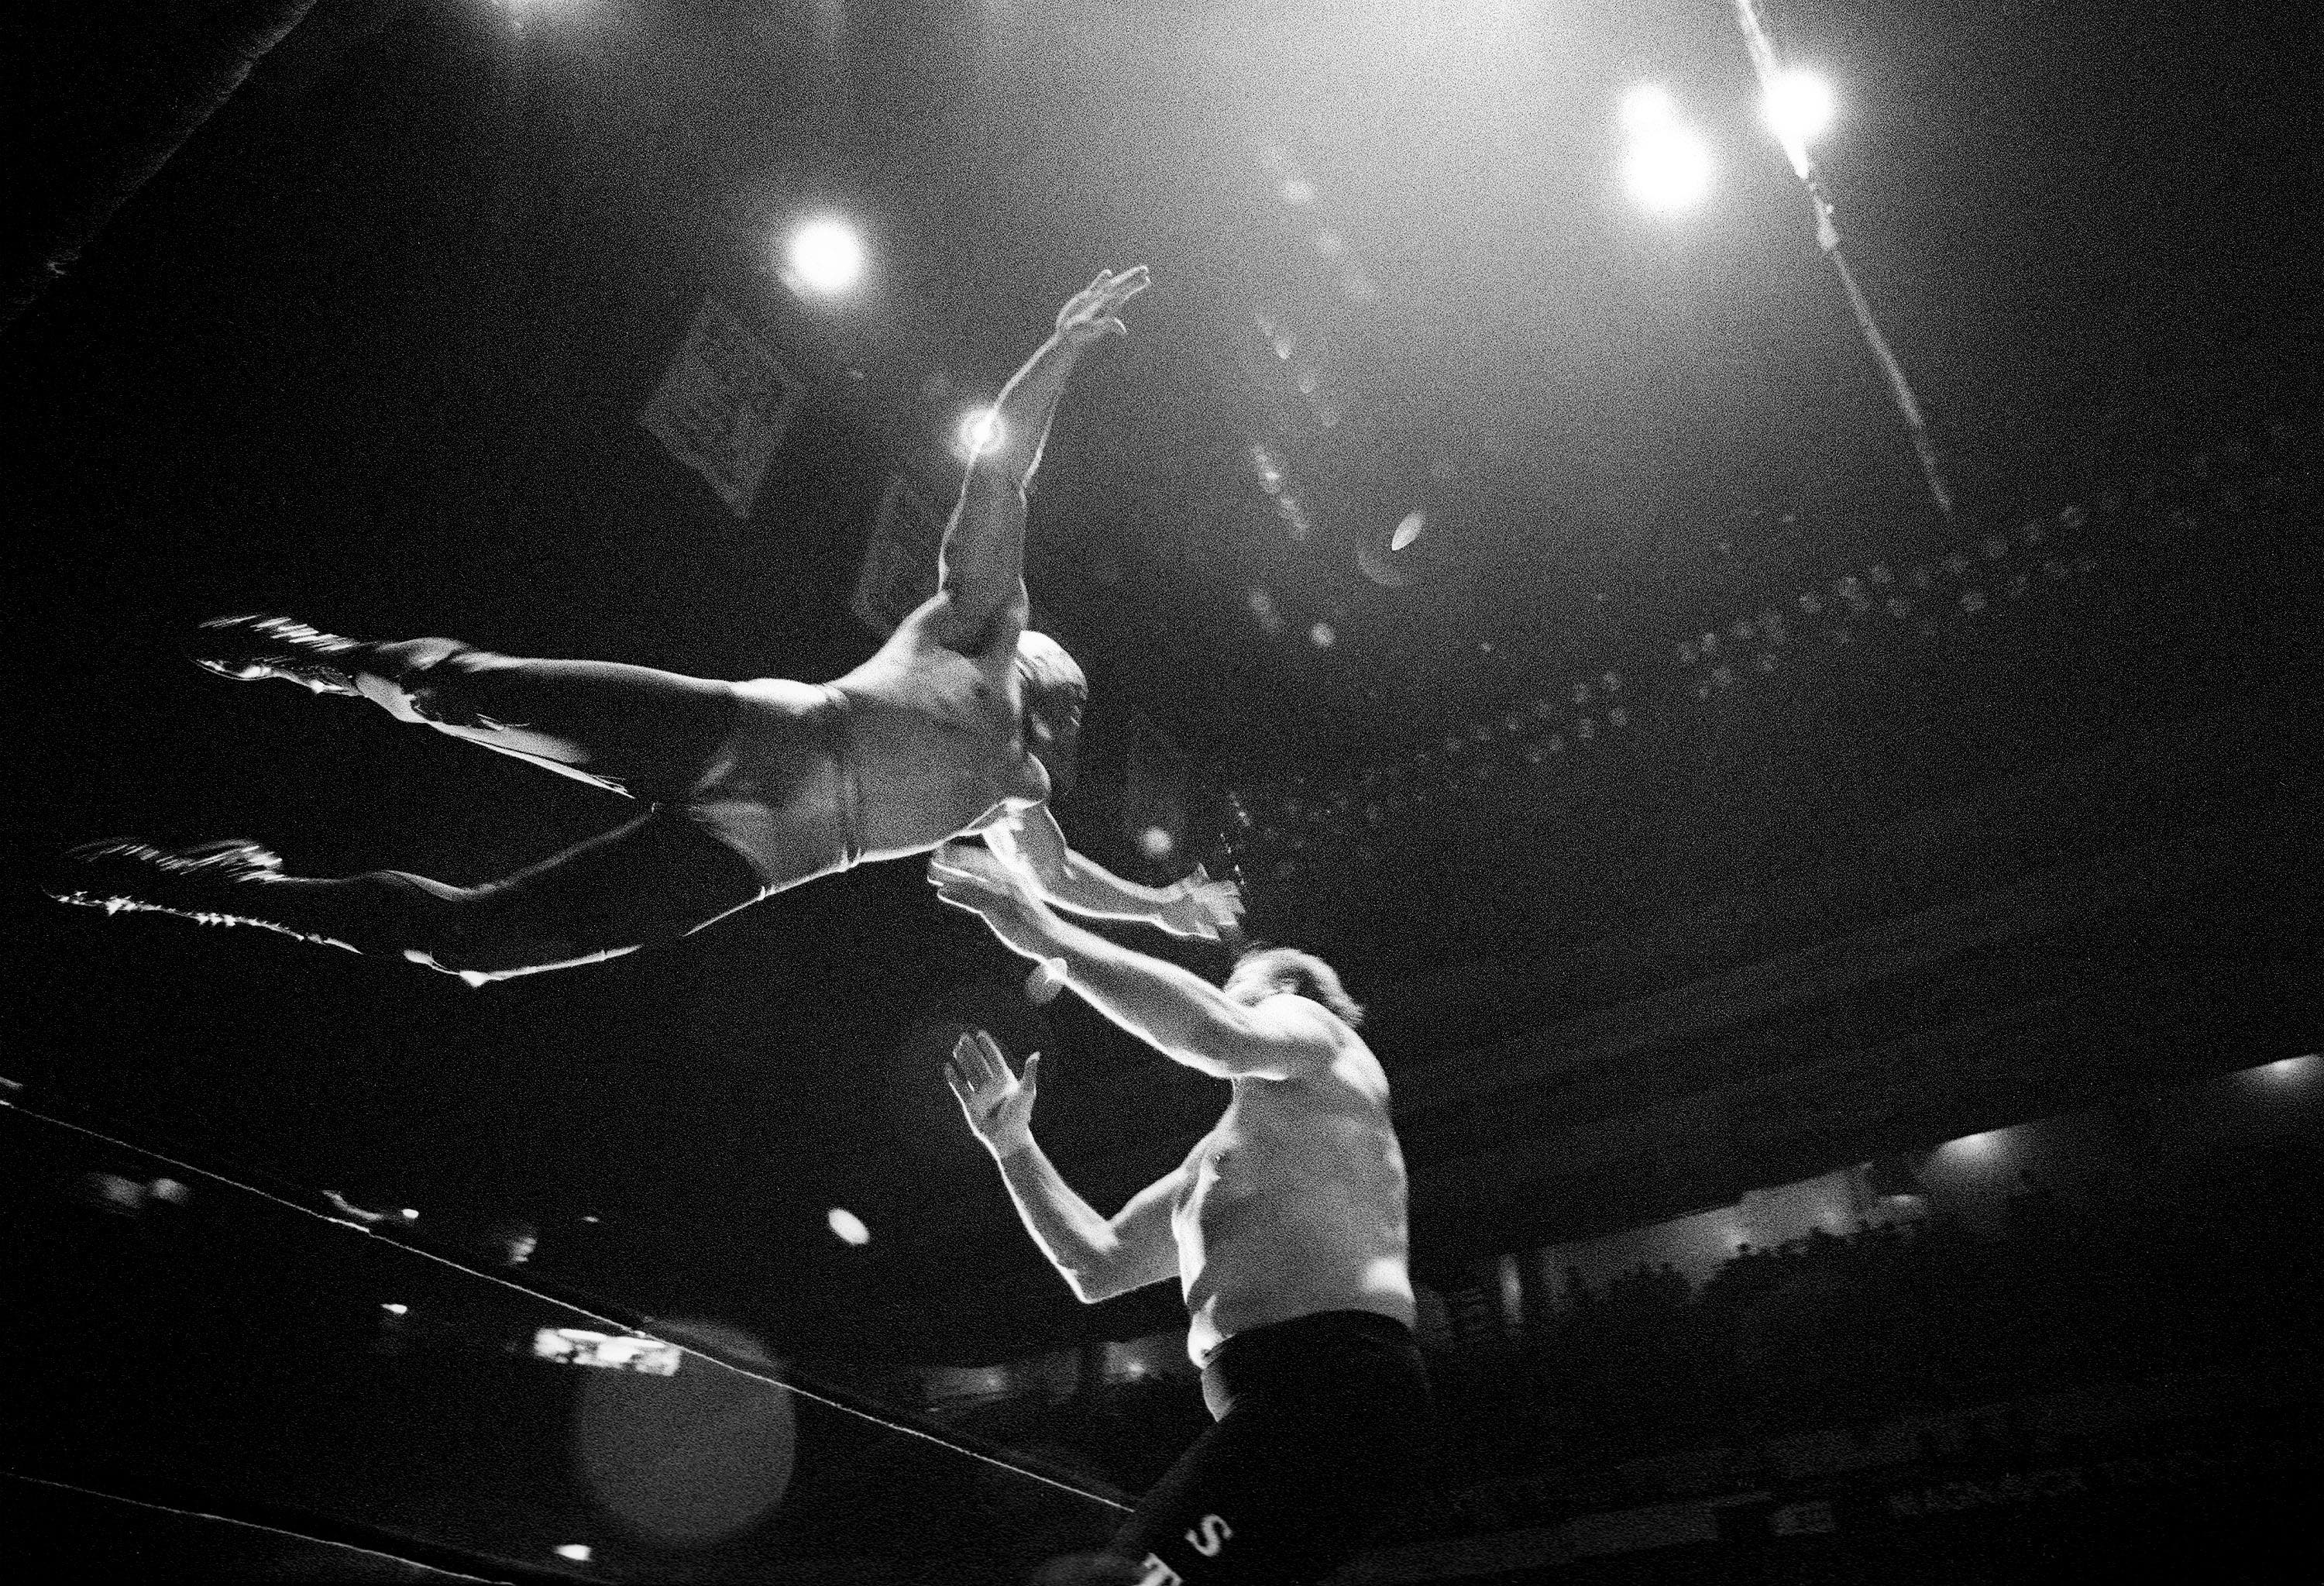 Greg Bowl Takes Into the Unique and Mysterious World of Pro Wrestling